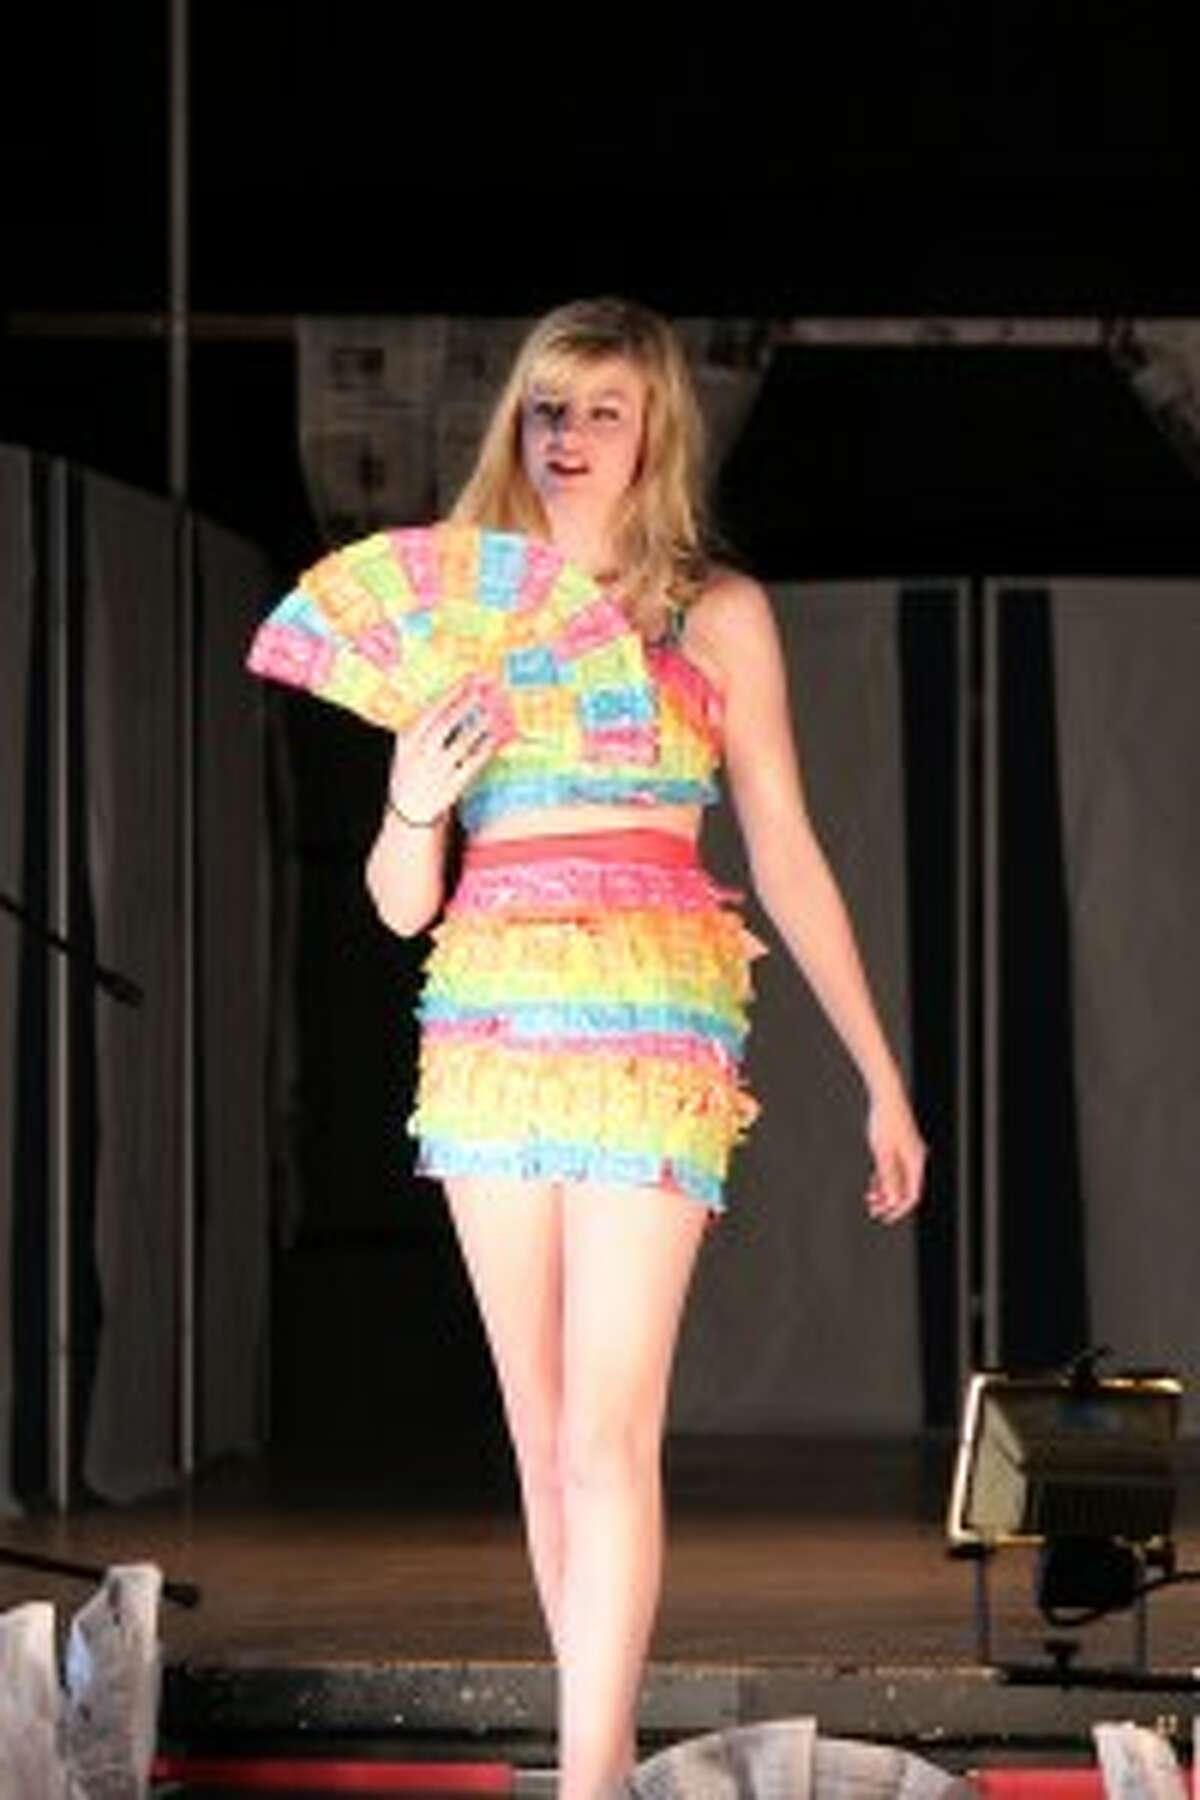 UPCYCLE: Tyler White's colorful crop top and skirt ensemble, modeled by Elizabeth Quinn, is made from flavored tootsie wrappers.